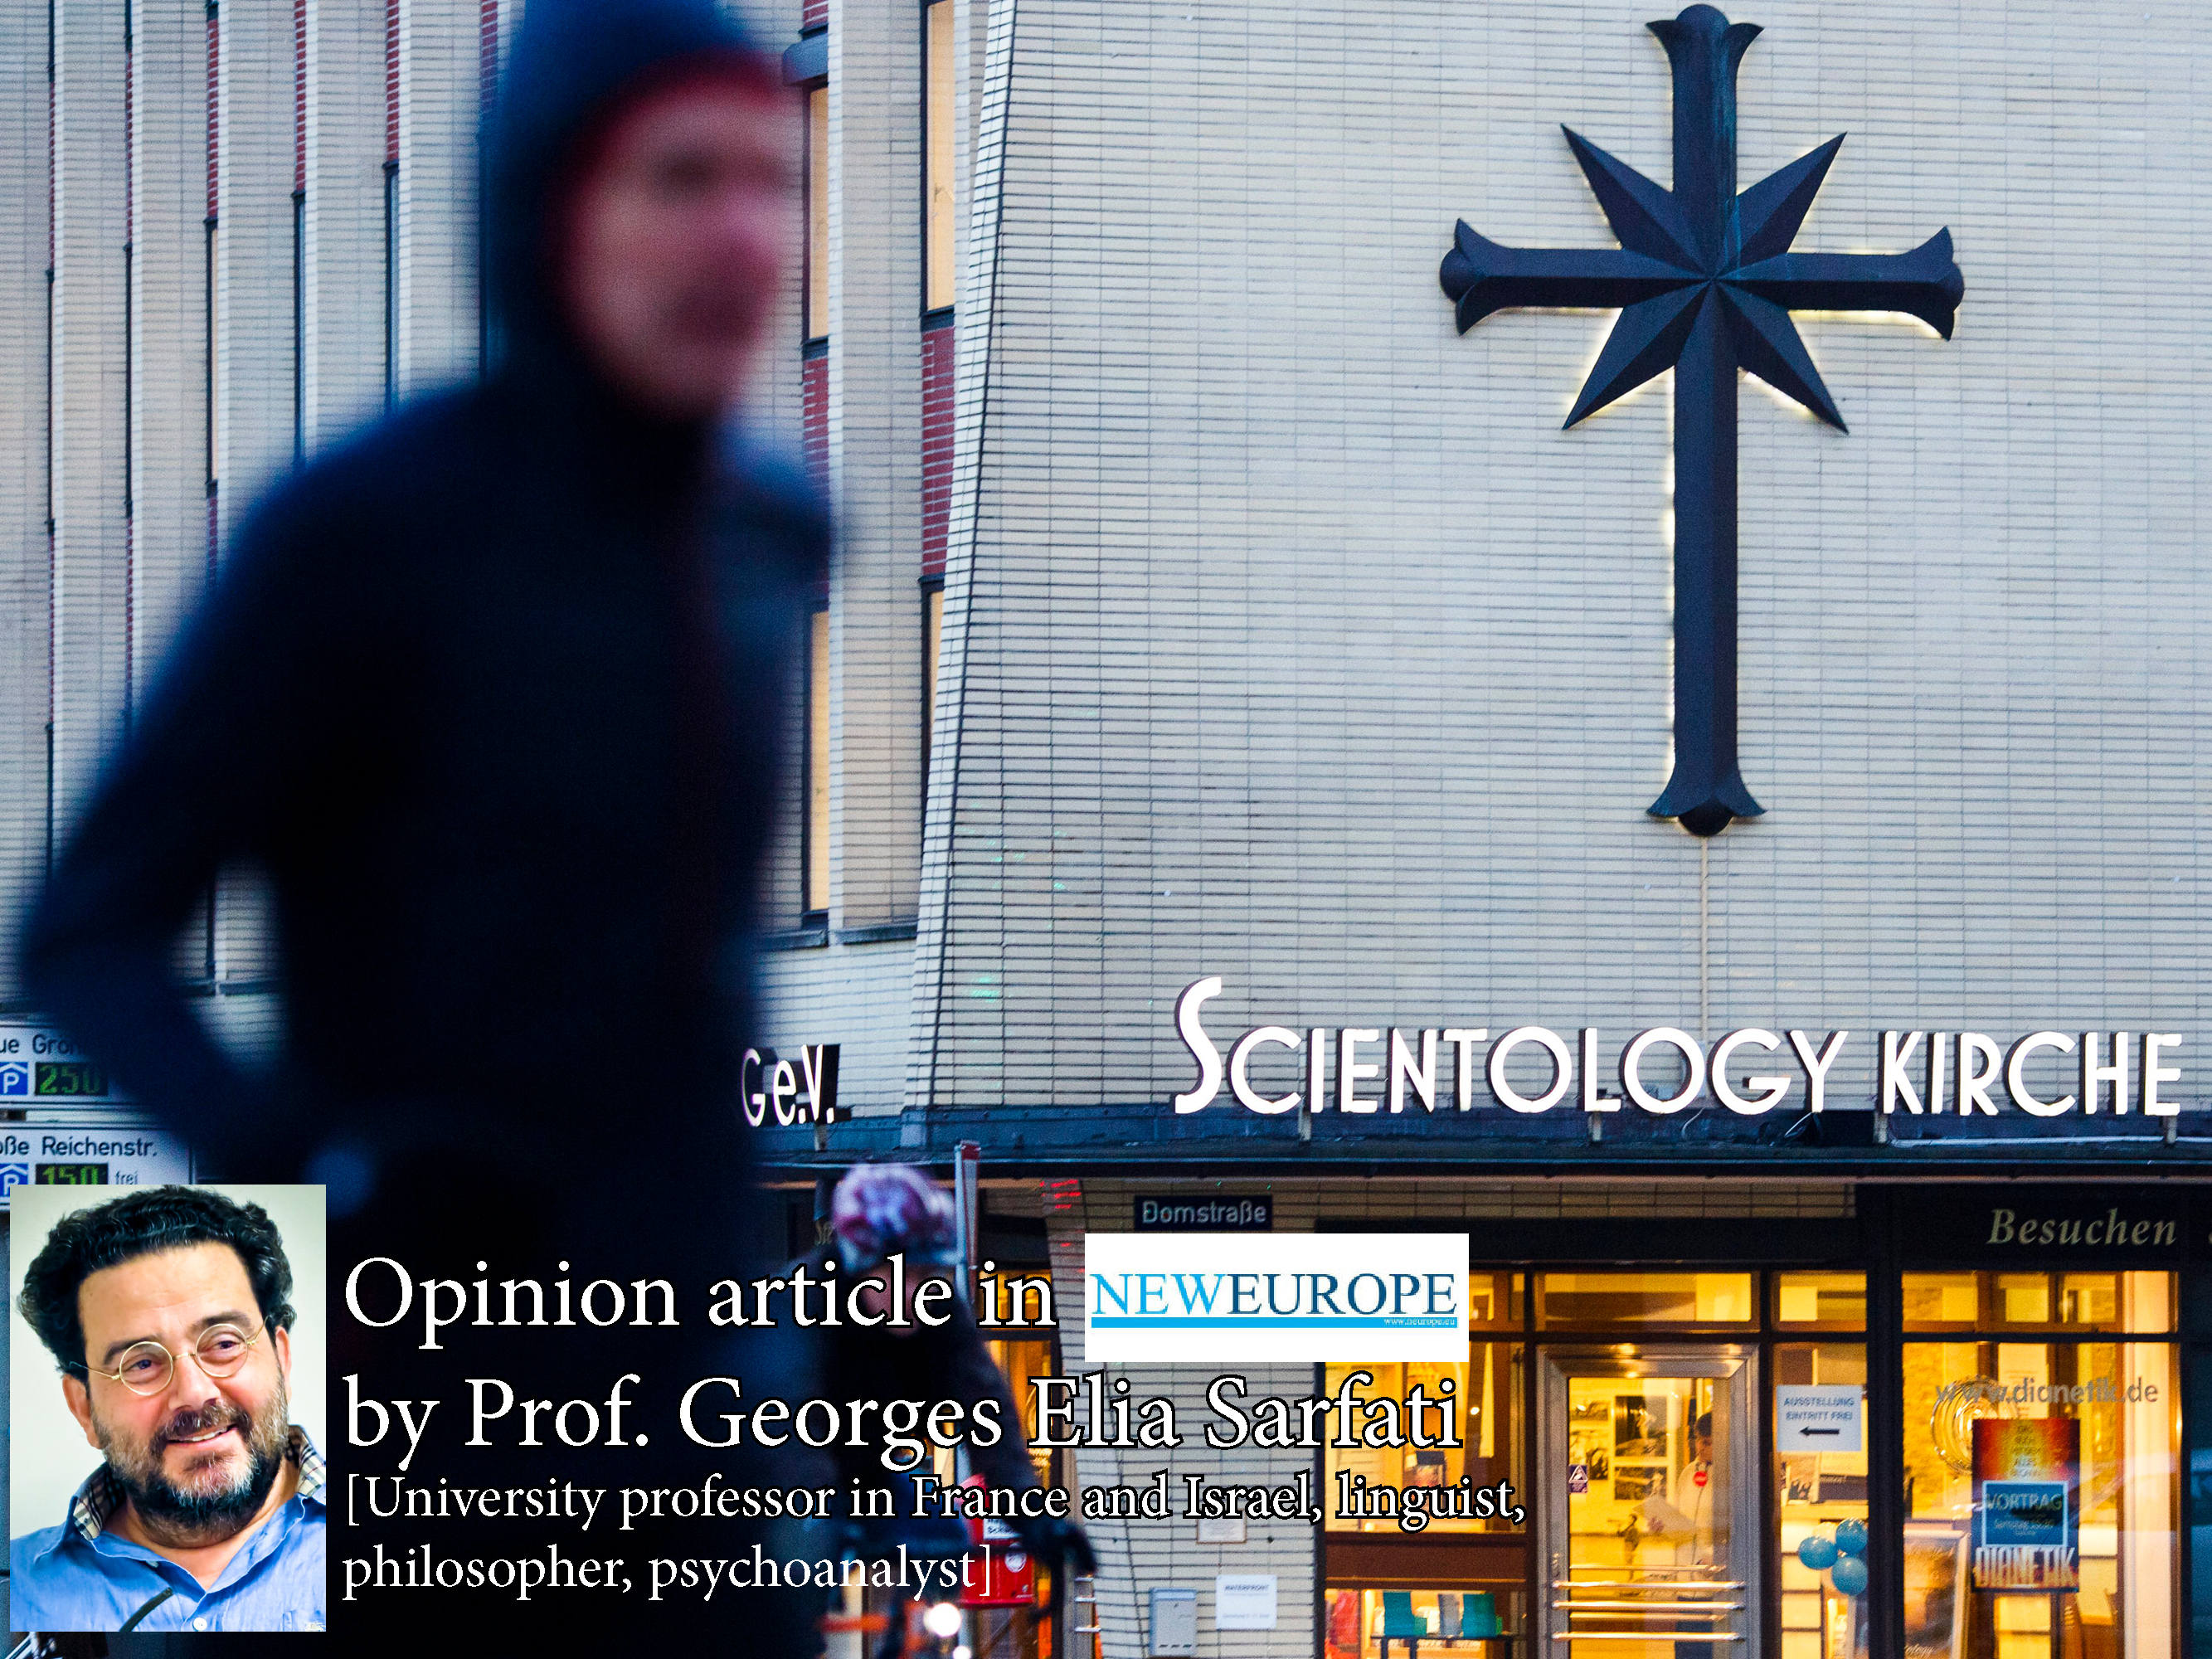 Opinion article about Discrimination of Scientologists by Munich authorities. Written by Prof. Georges Elia Sarfati